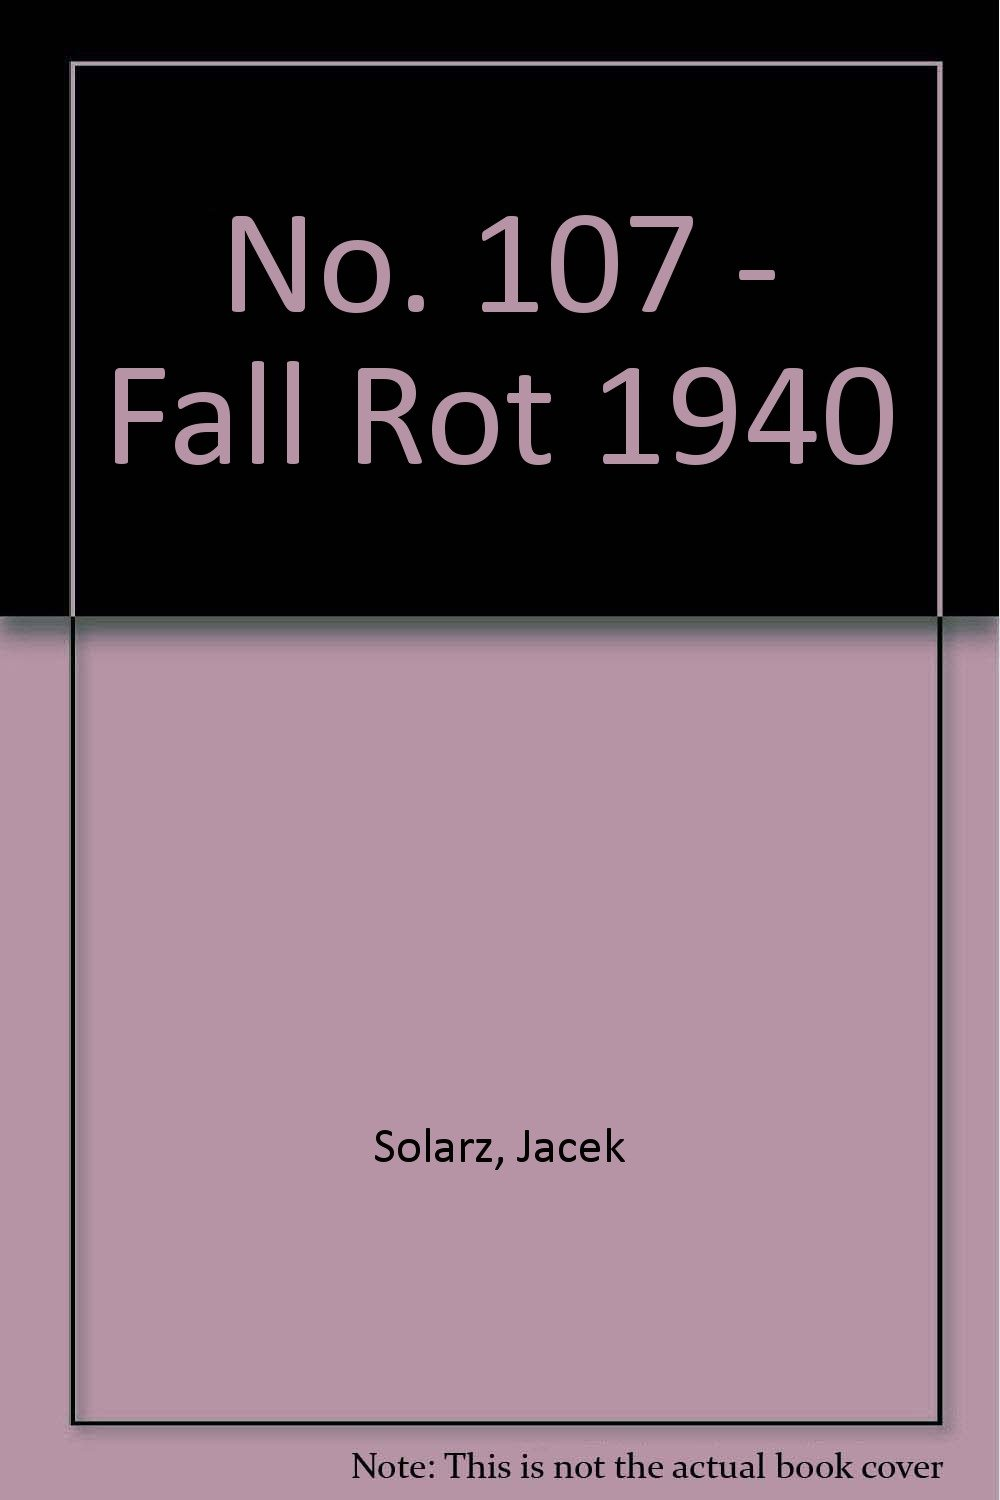 No  107 - Fall Rot 1940: Amazon co uk: Jacek Solarz: 9788372190741